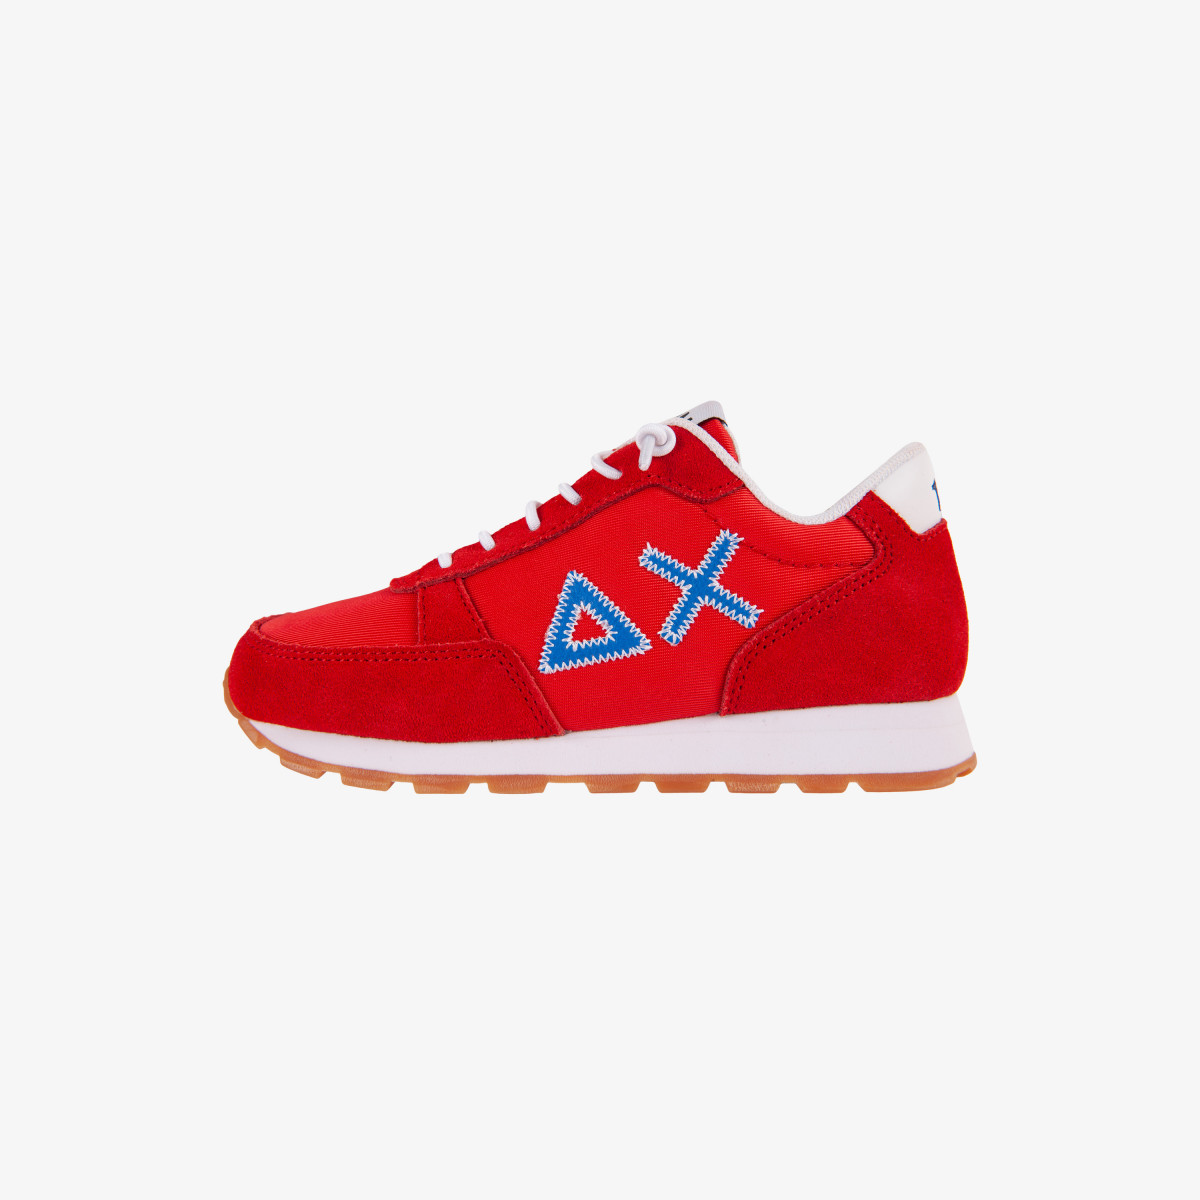 BOY'S NIKI BIG LOGO RED